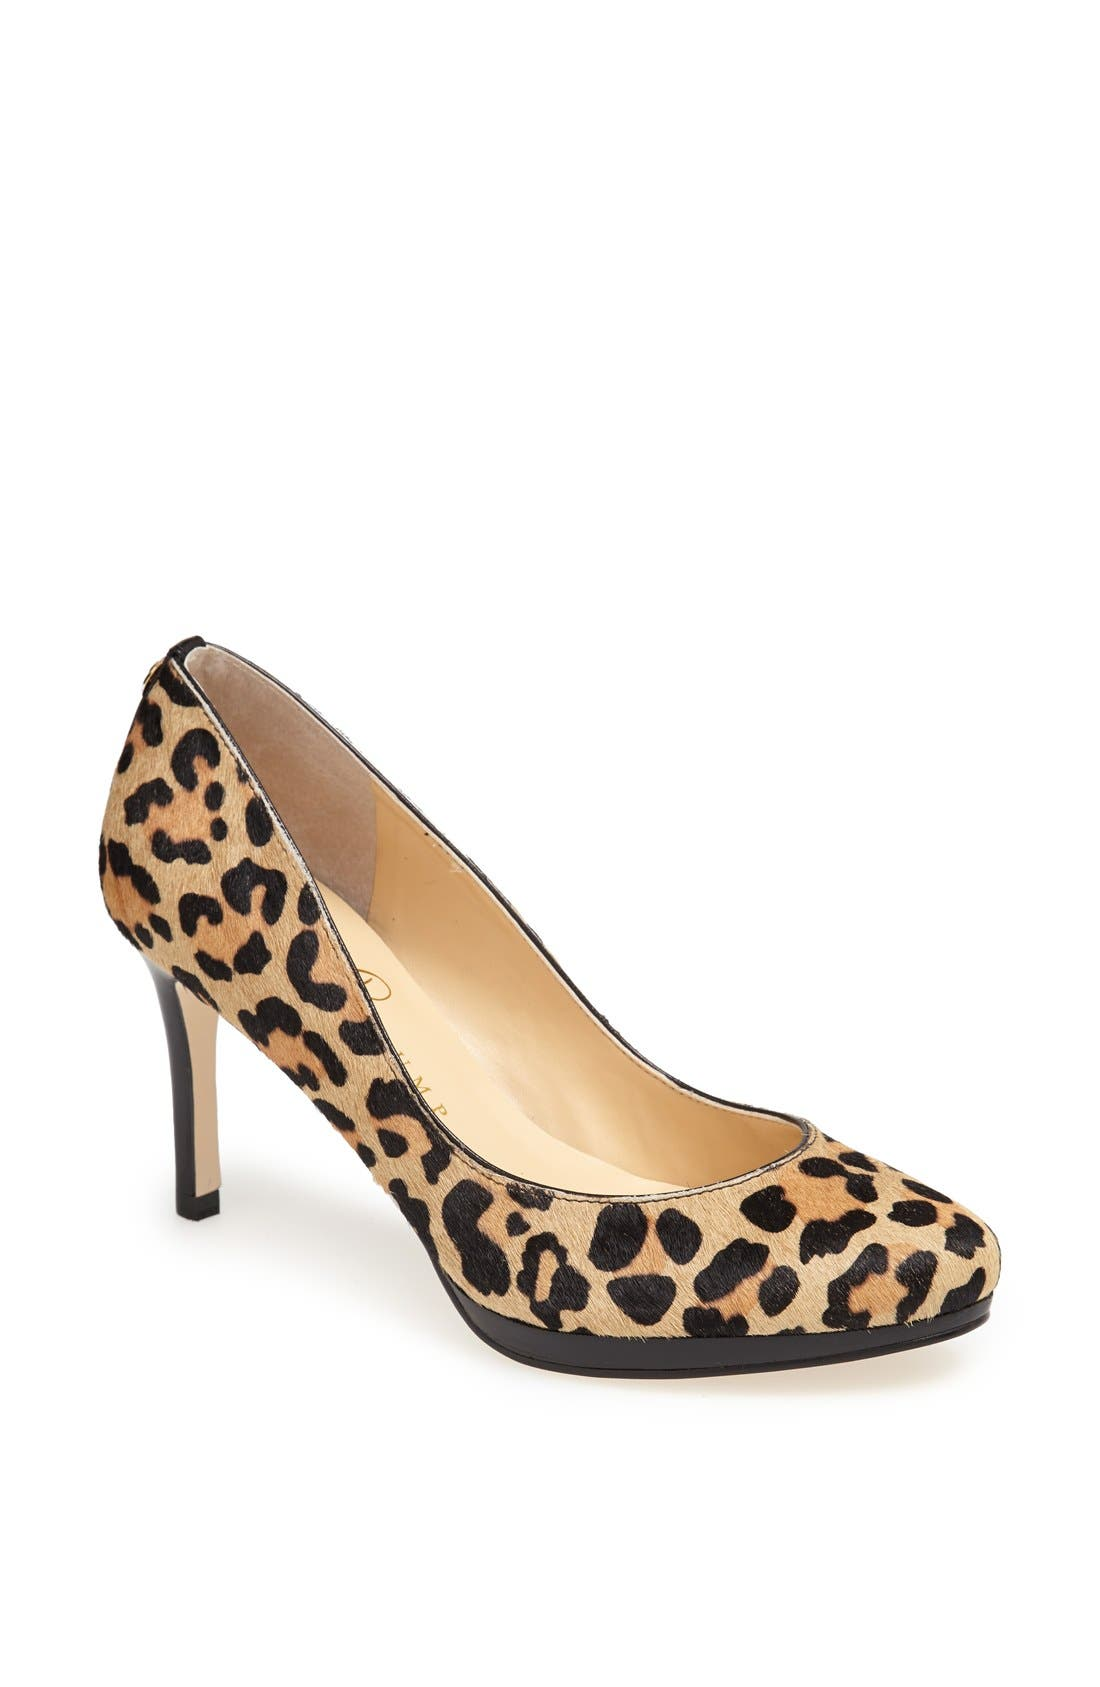 IVANKA TRUMP 'Sophia' Calf Hair Platform Pump, Main, color, 900